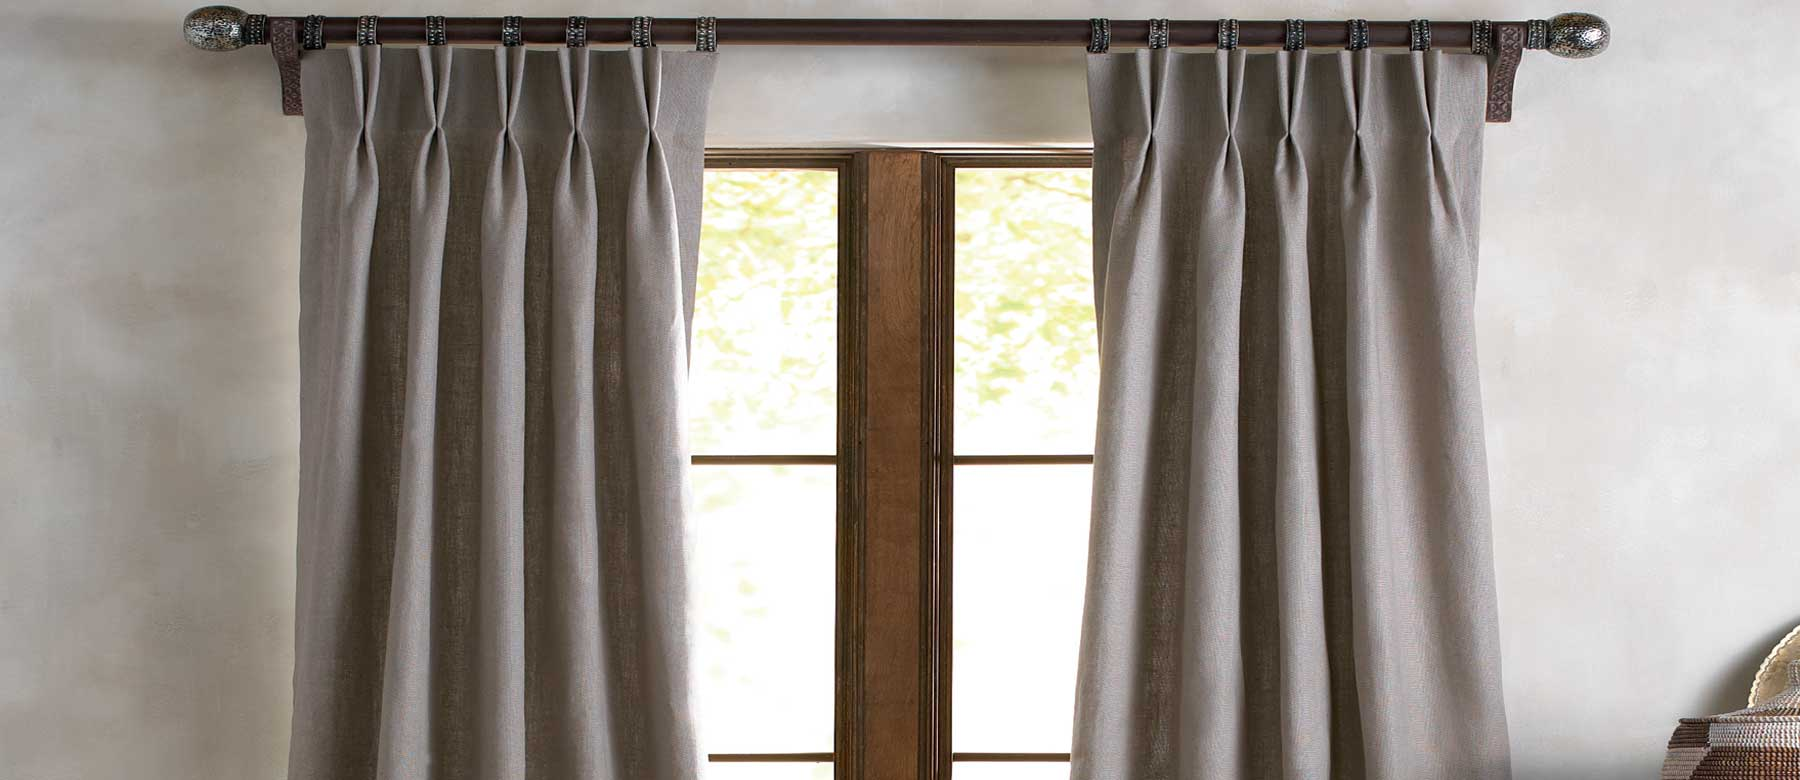 Home Hardware Windows Drapery Hardware And Window Treatments Rockville Interiors